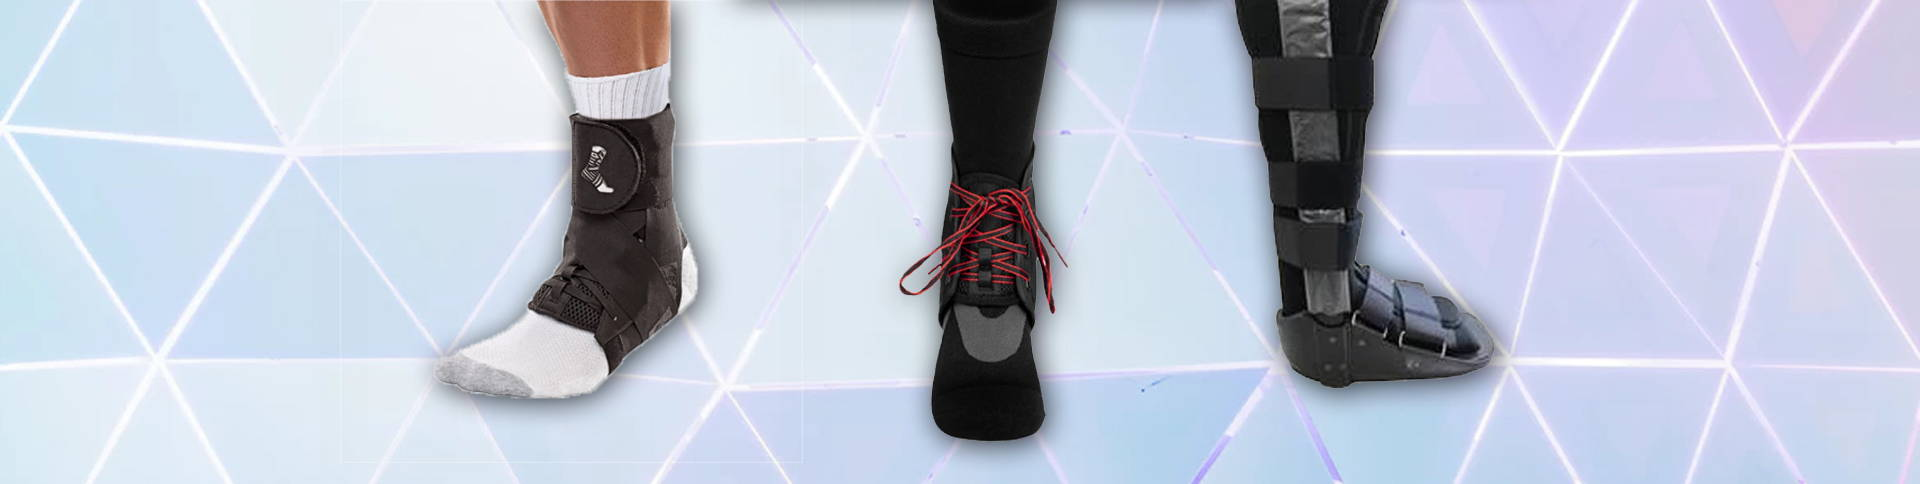 Ankle Brace Materials